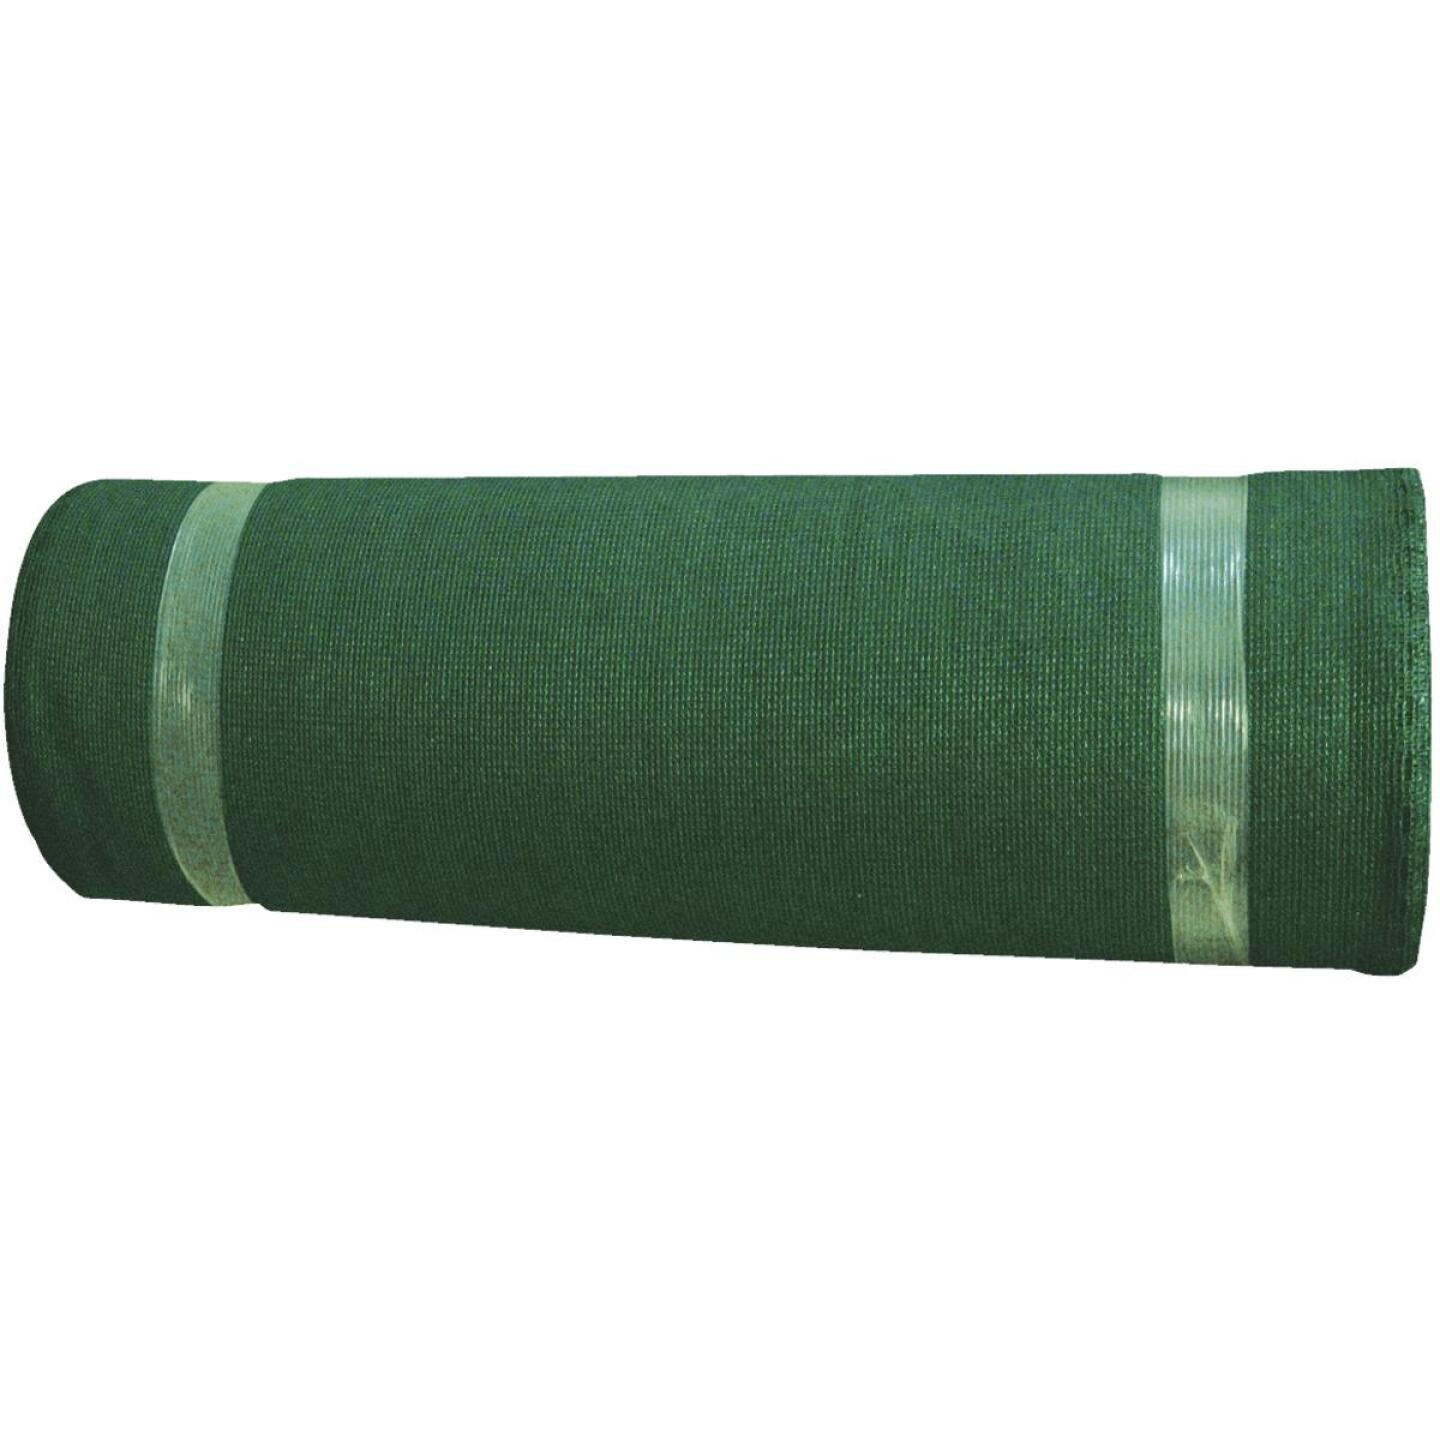 Coolaroo 6 Ft. W. x 100 Ft. L. Forest Green 50% UV Sun Screen Fabric Image 1